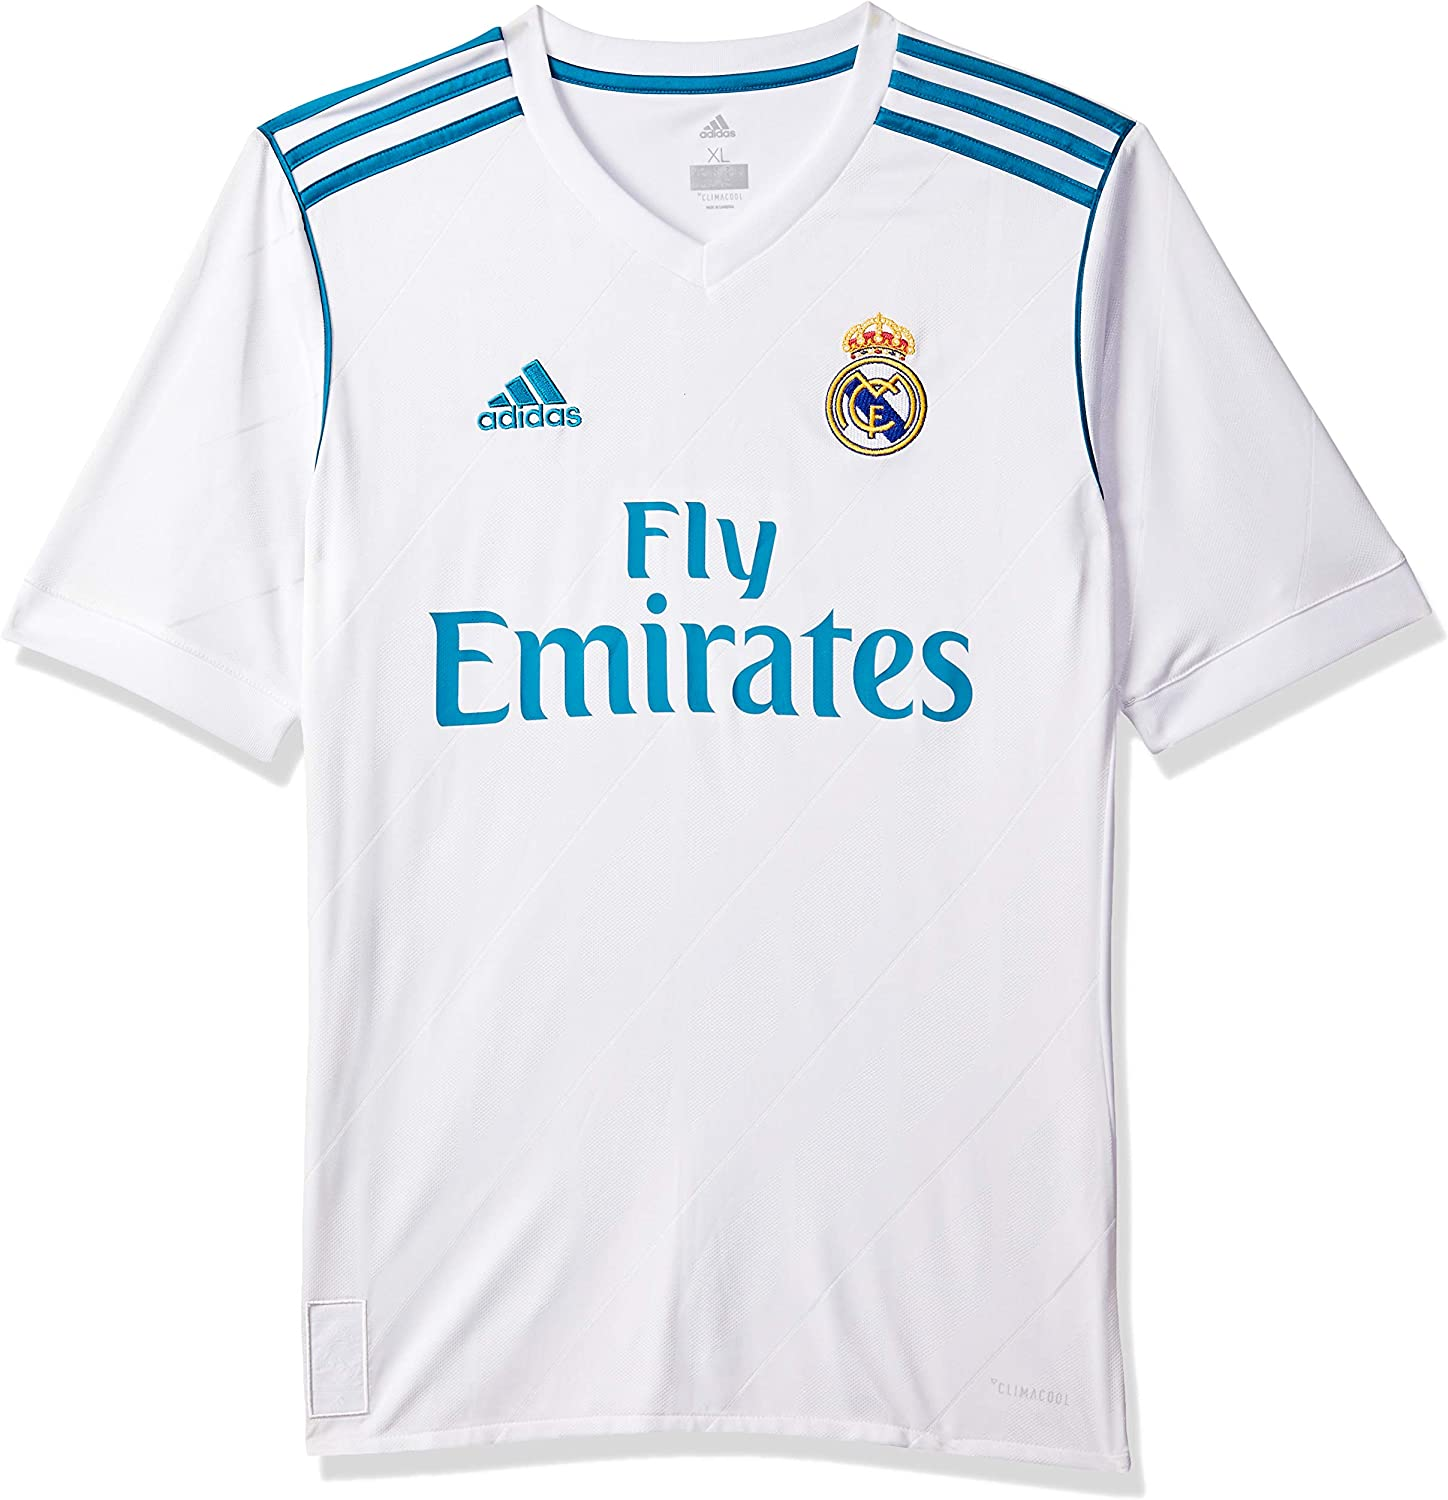 adidas 2017-2018 Real Madrid Home Football Soccer T-Shirt Jersey (Kids)